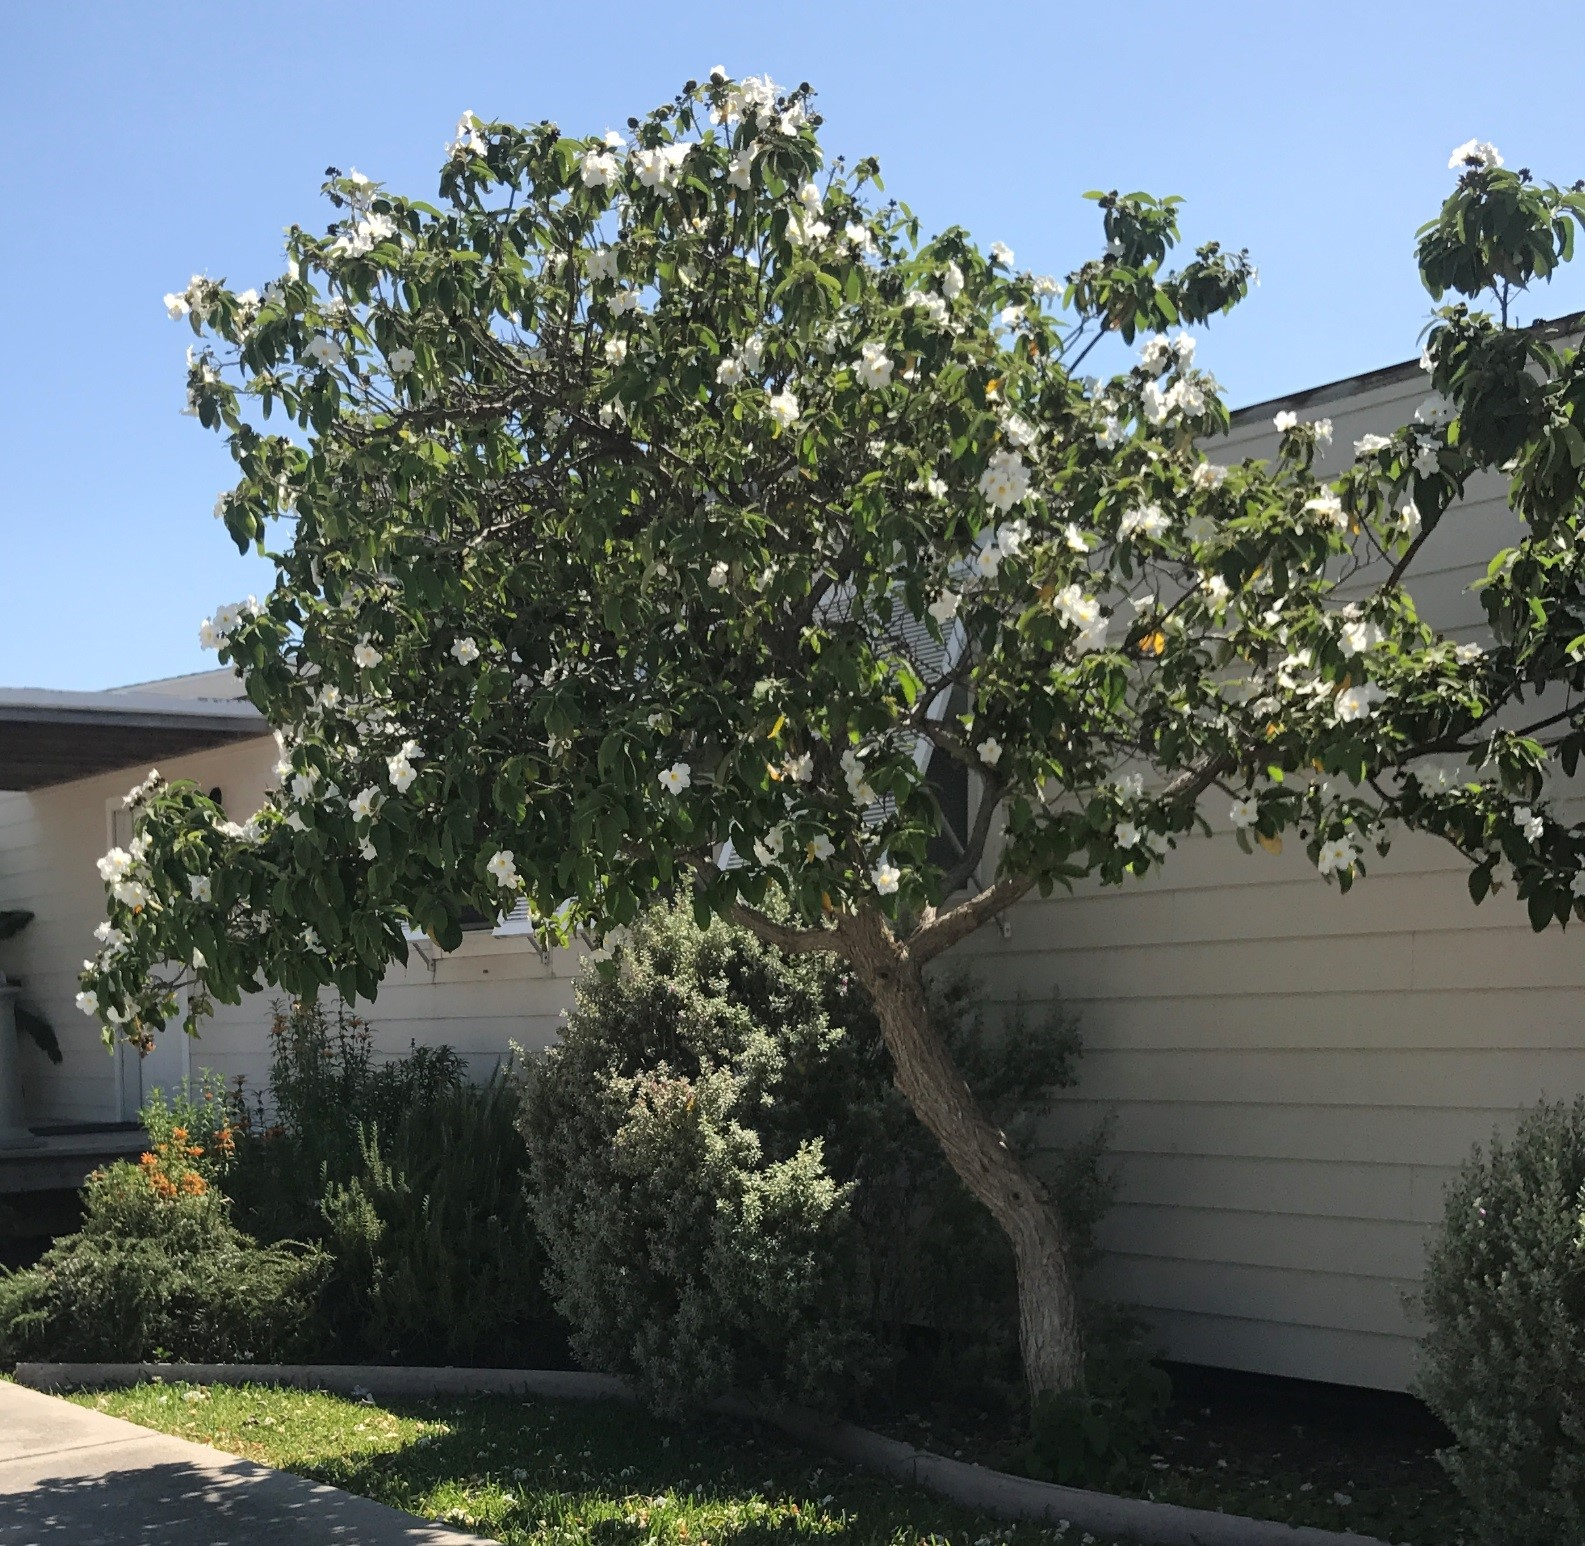 Breathtaking Humans Andor Tree Has A Lifespan Container Olive Tree Louisiana May Flowers At Community Center Gardens Olive Tree Y Are But Slightly Toxic Causing Dizziness houzz-02 Sweet Olive Tree